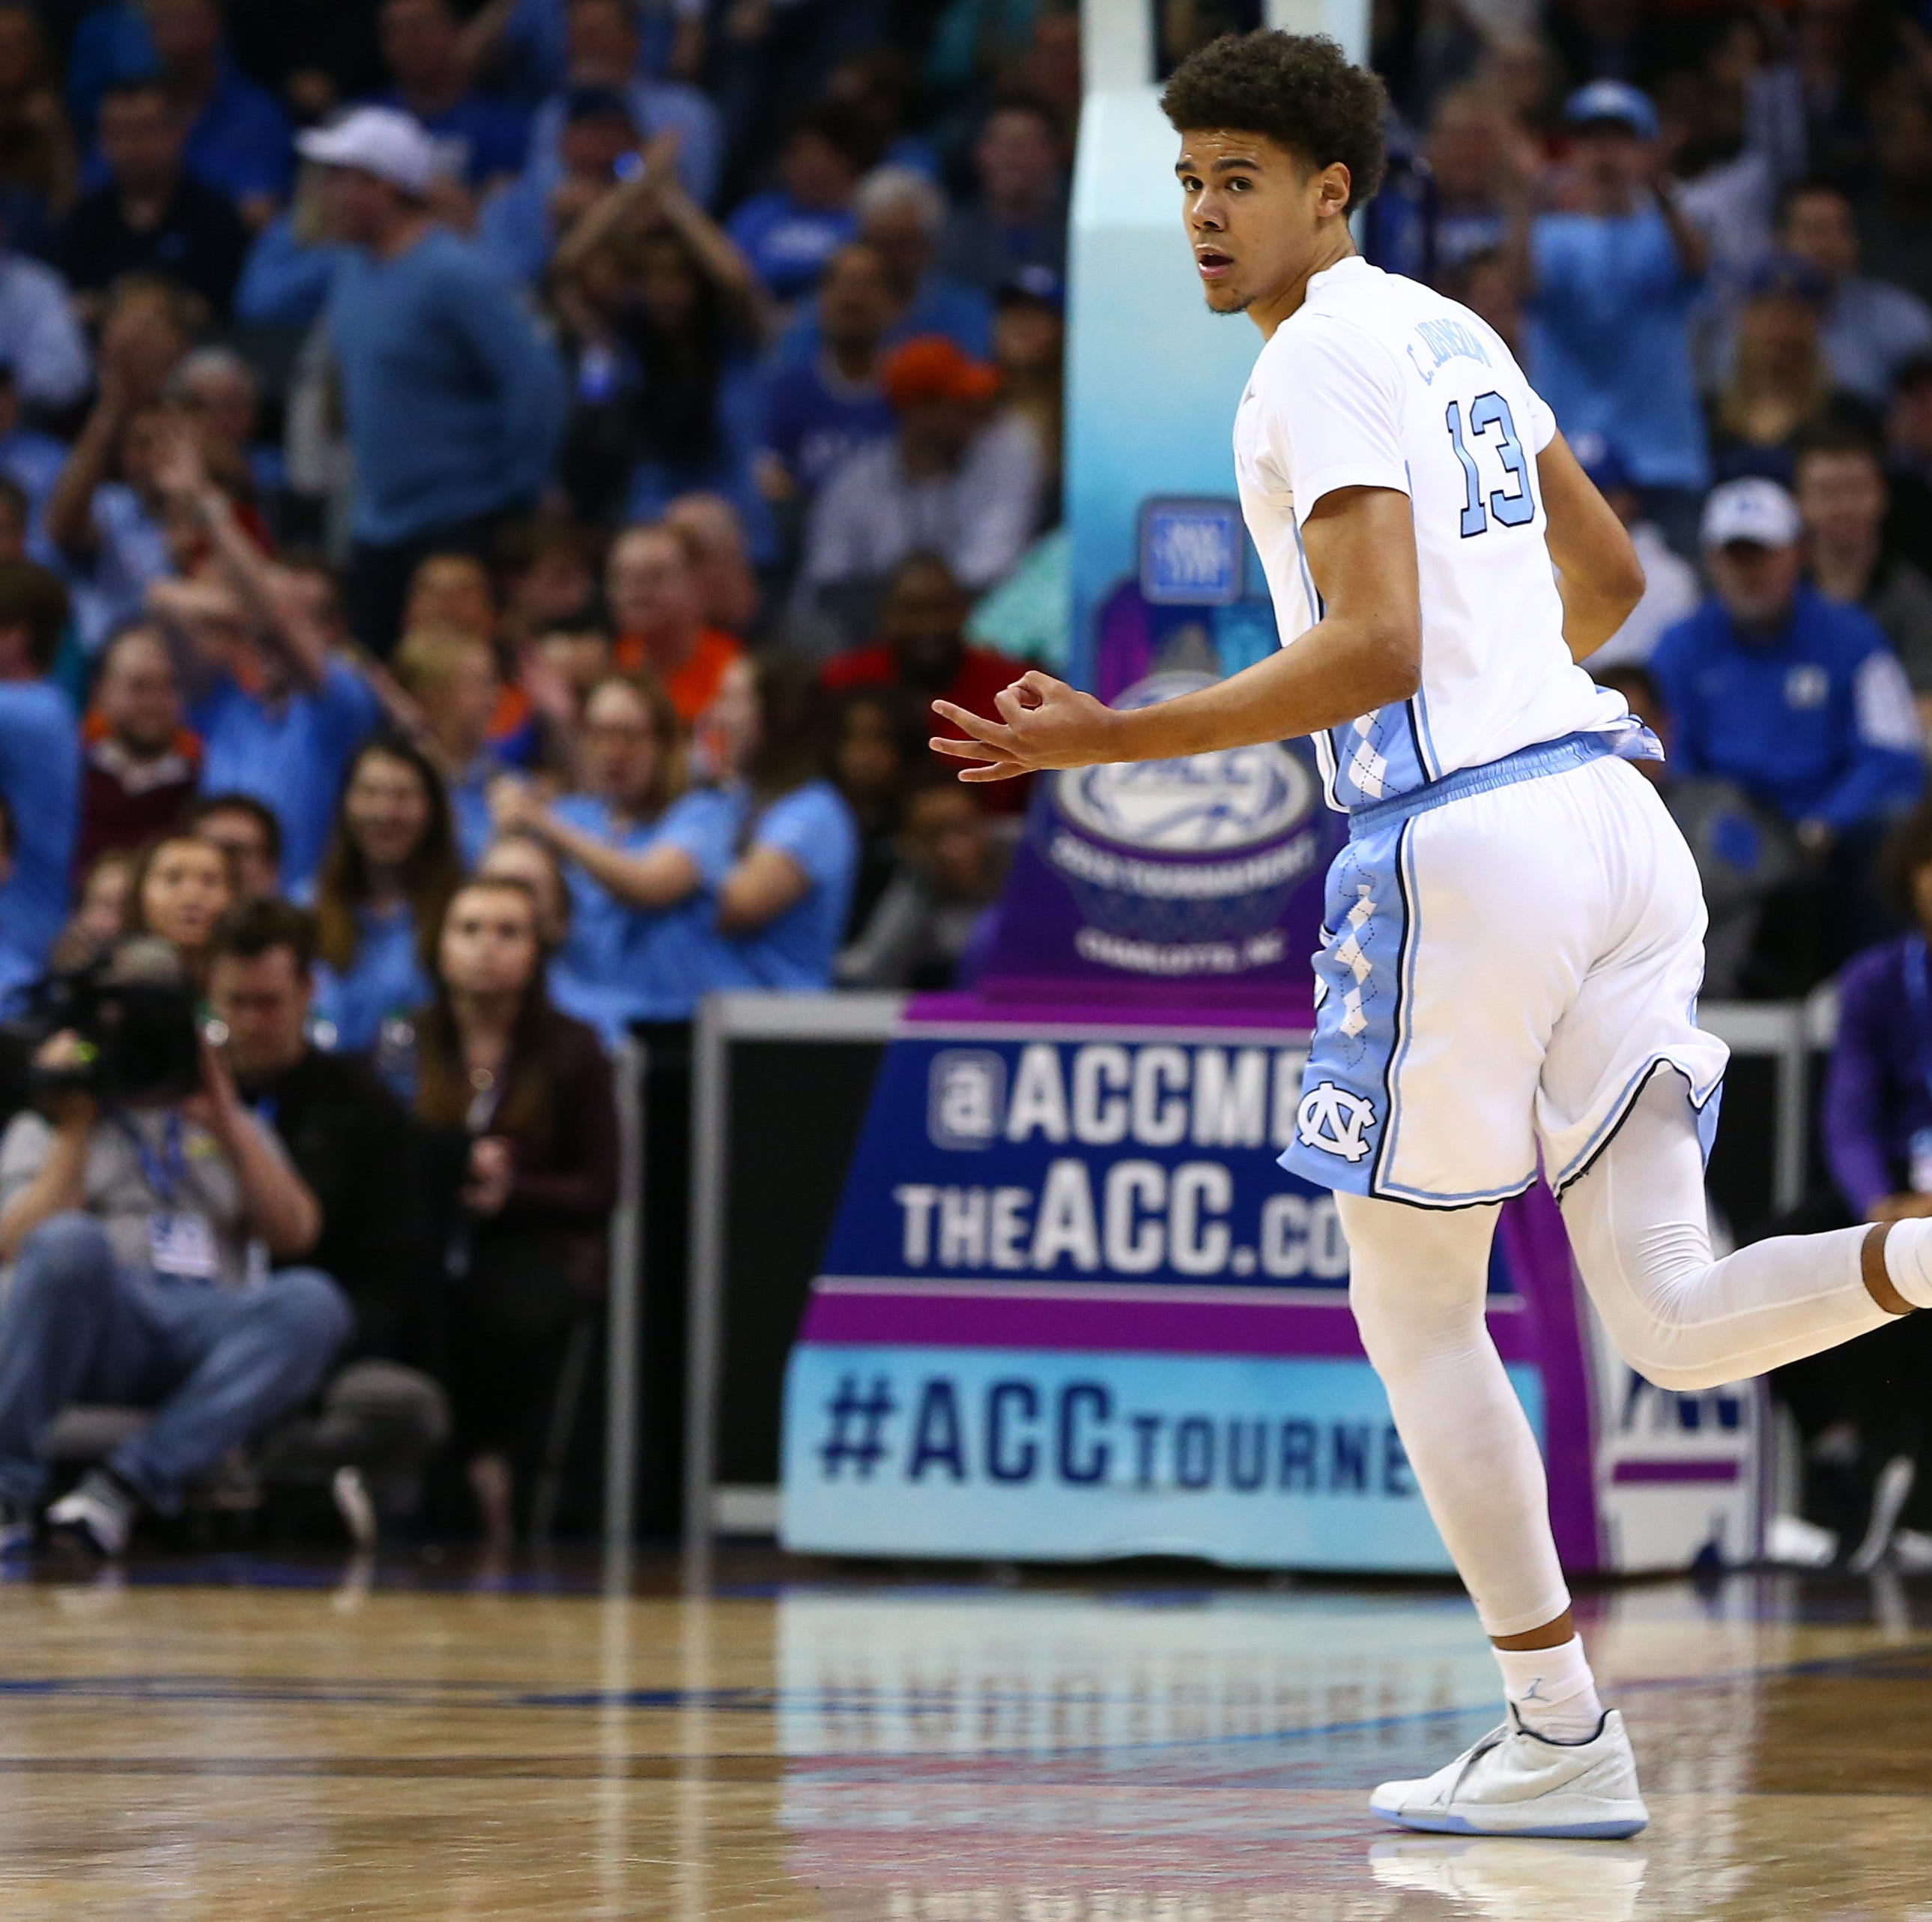 NCAA tournament 2019: Fill out or print your March Madness bracket here